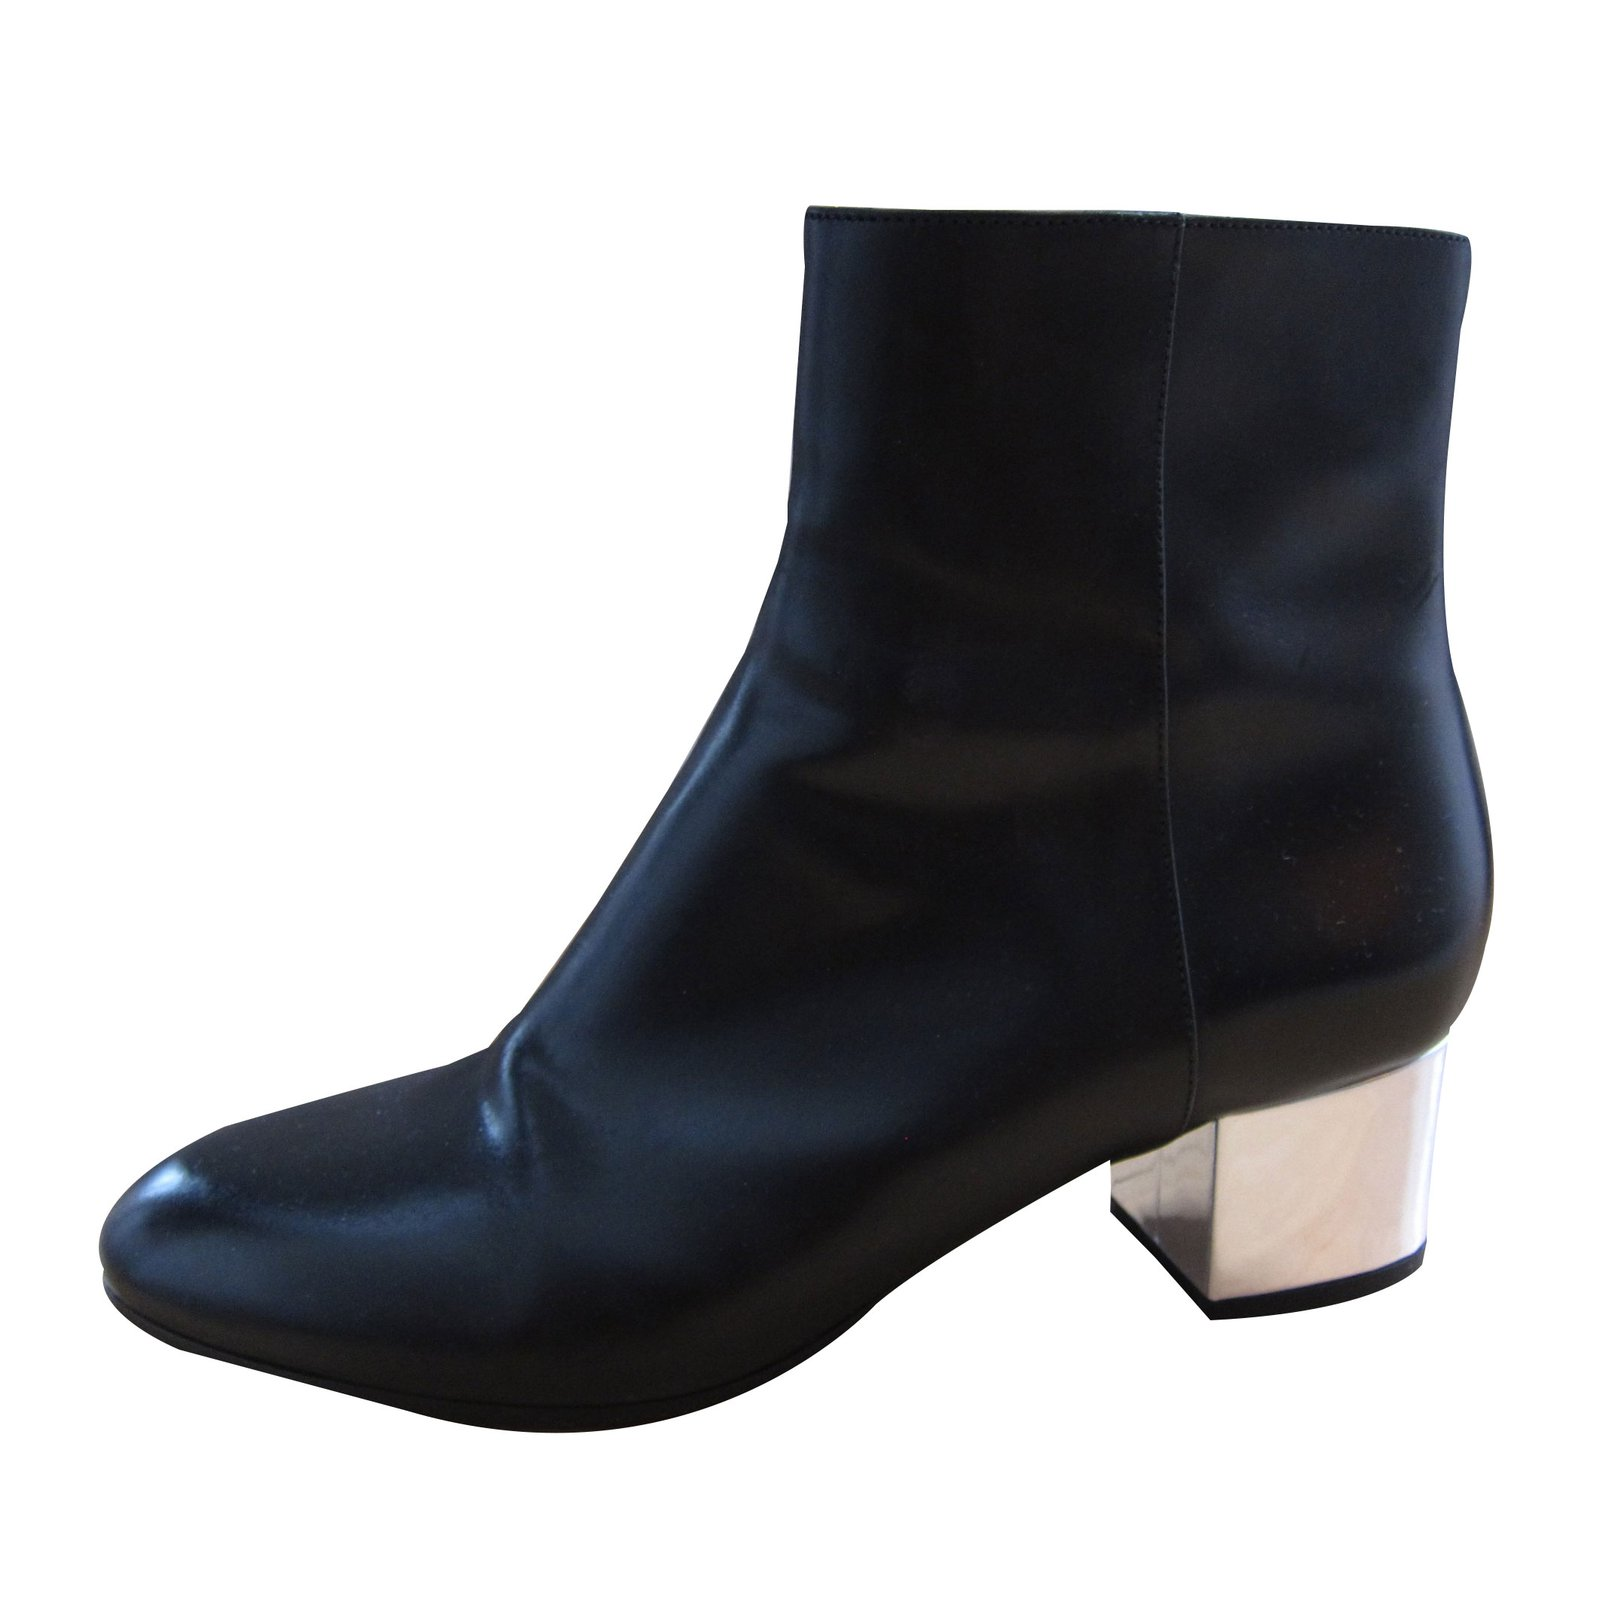 7166380d231fe7 Dries Van Noten Ankle Boots Ankle Boots Leather Black ref.35108 ...